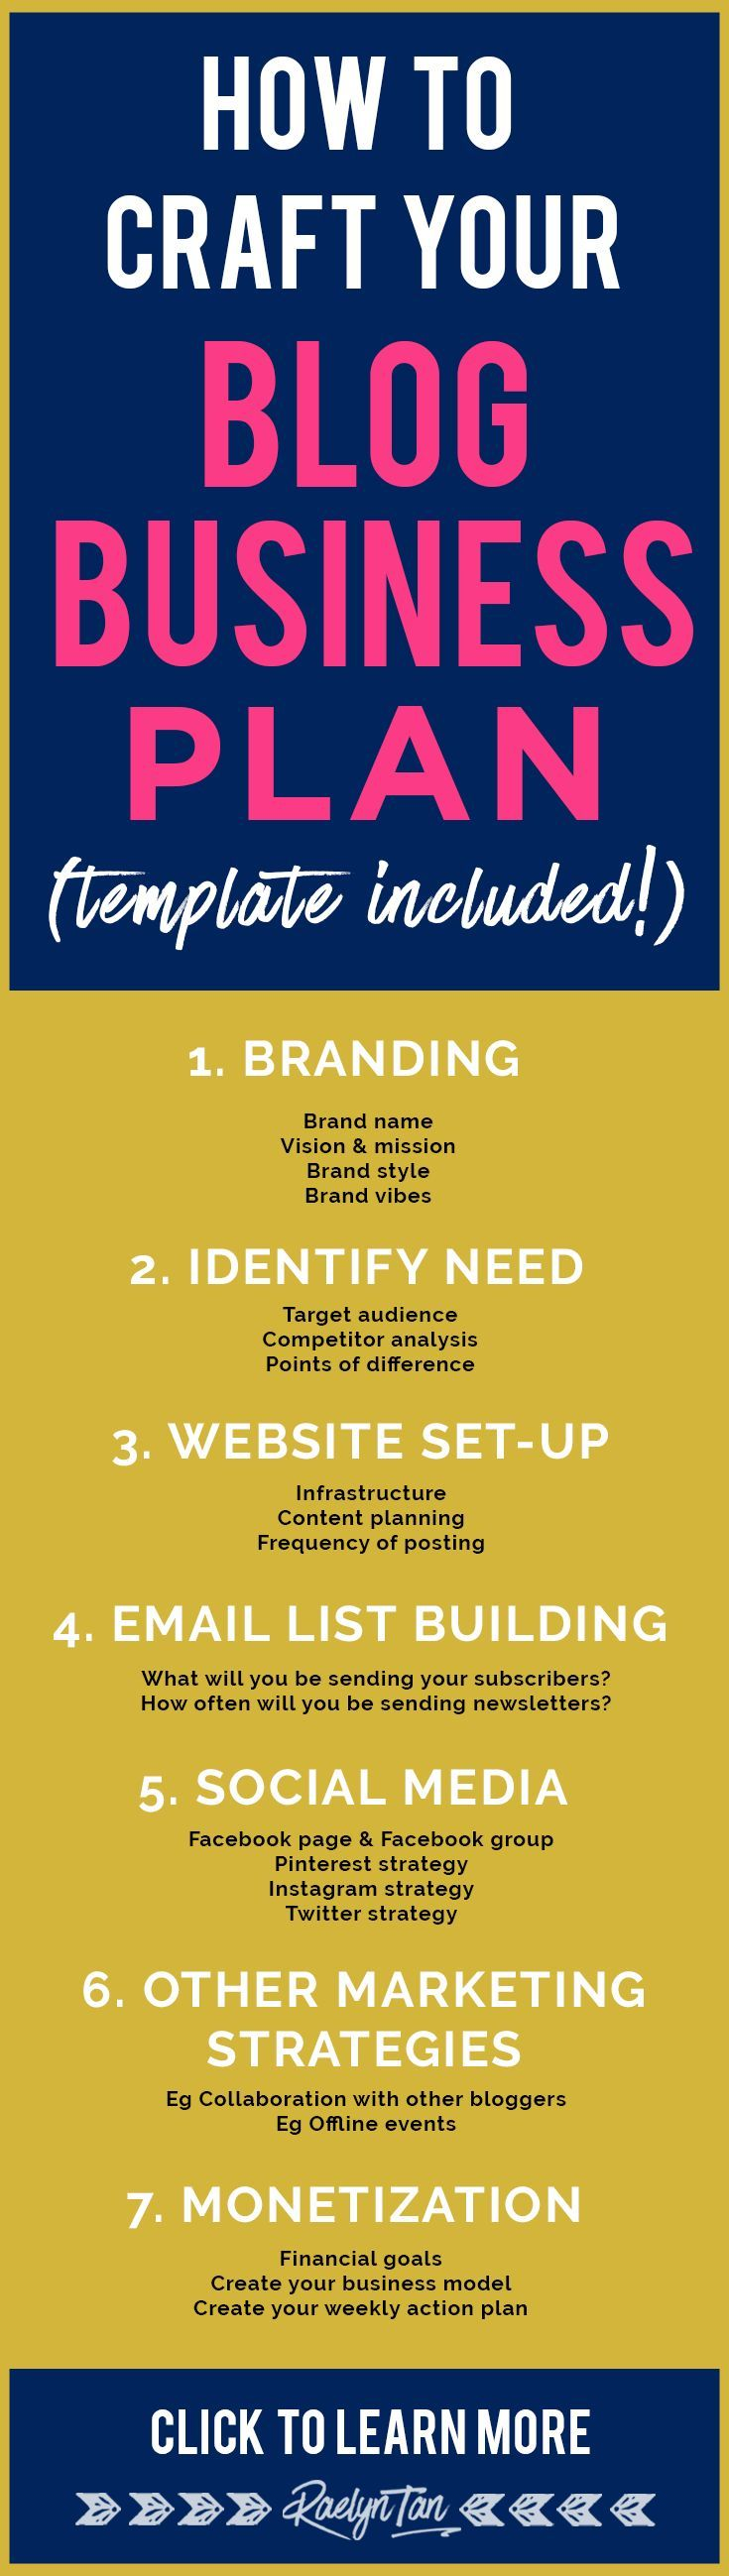 How to craft your blog business plan, with free printable template included for all entrepreneurs! Make money in your biz, sell products and rock social media with this blog business plan.